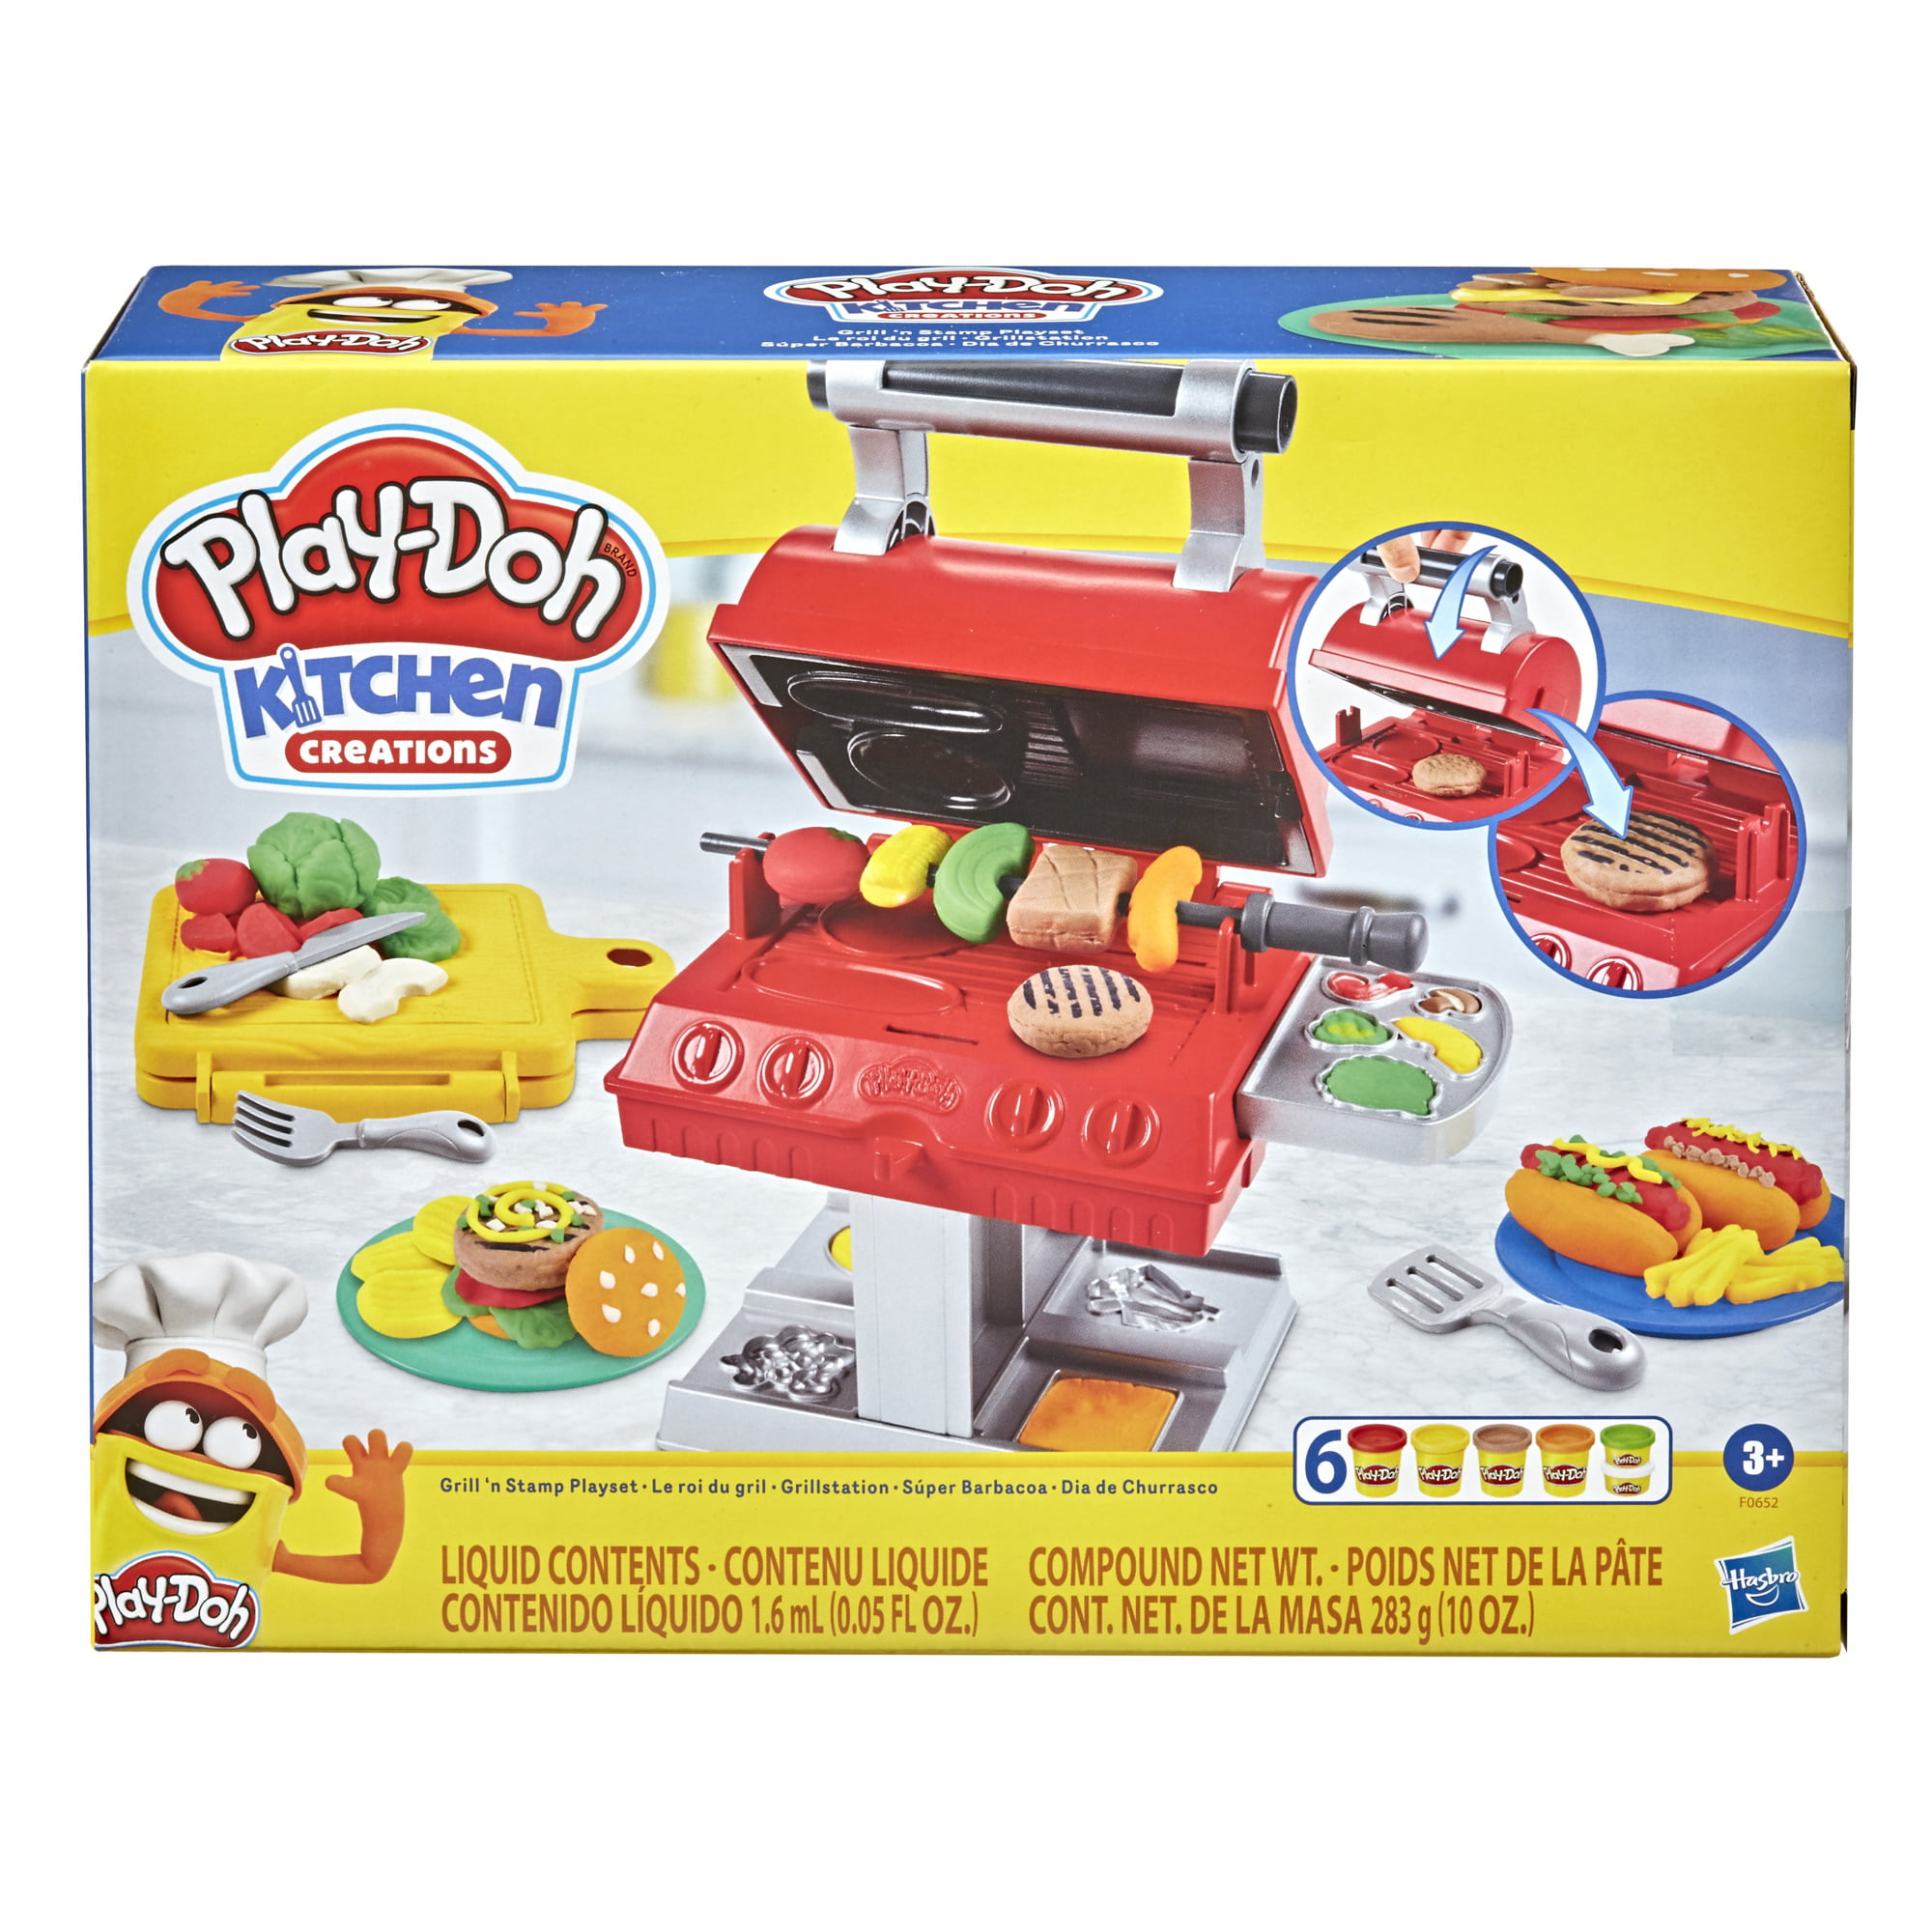 Play Doh Kitchen Creations Grill N Stamp Playset 10 Ounces Compound Total Walmart Com Walmart Com